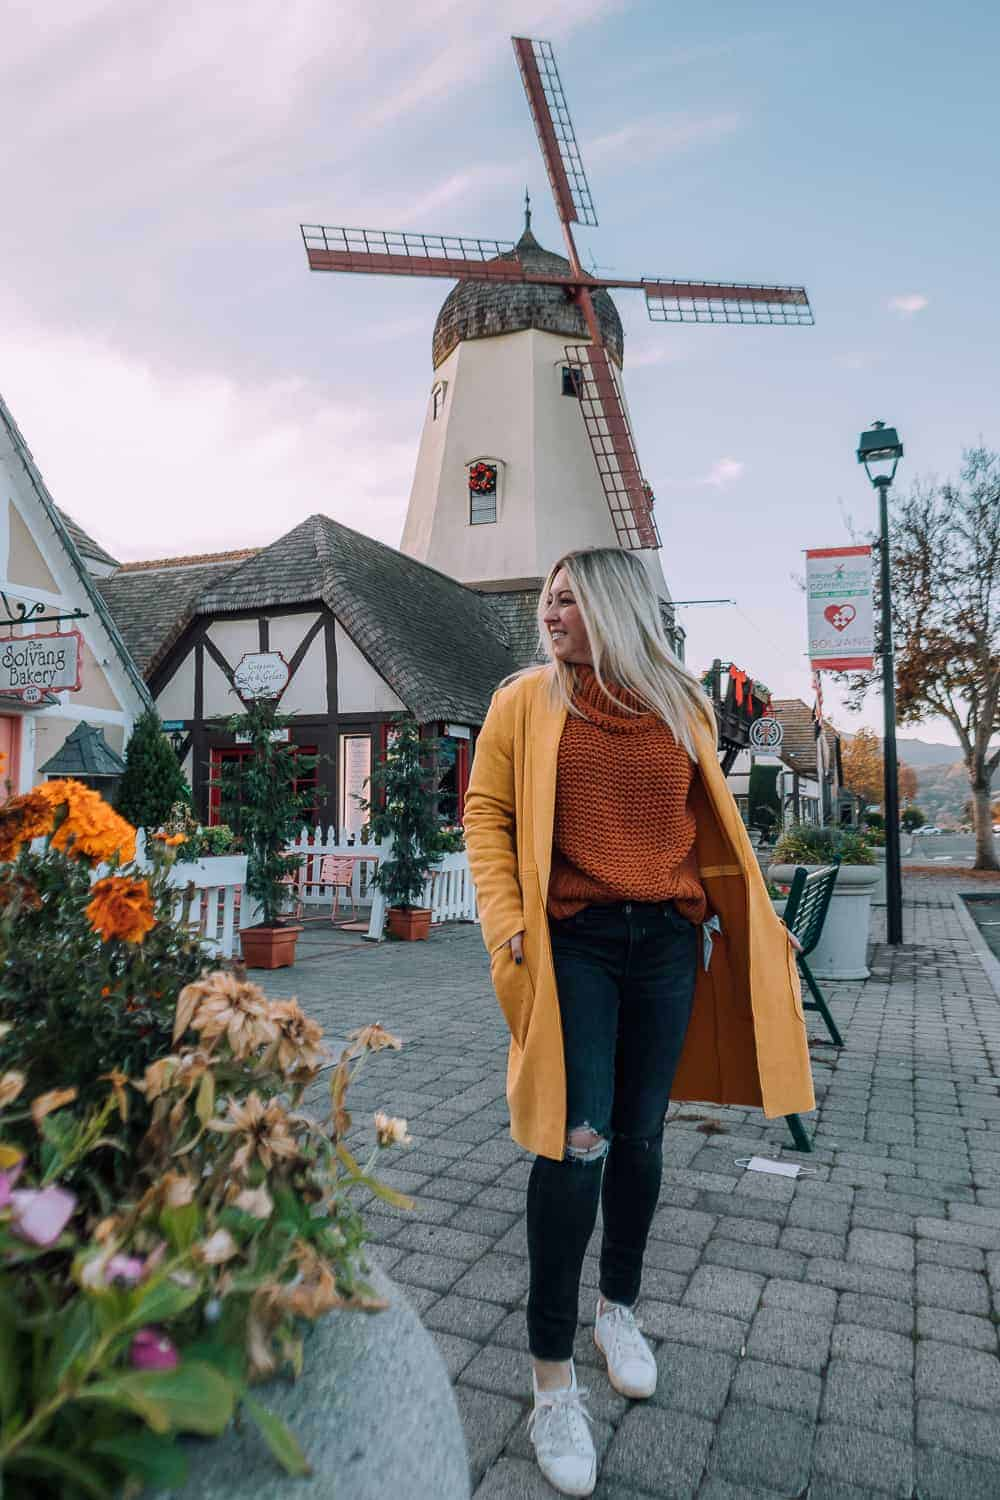 girl in orange sweater and yellow jacket in front of dutch windmill